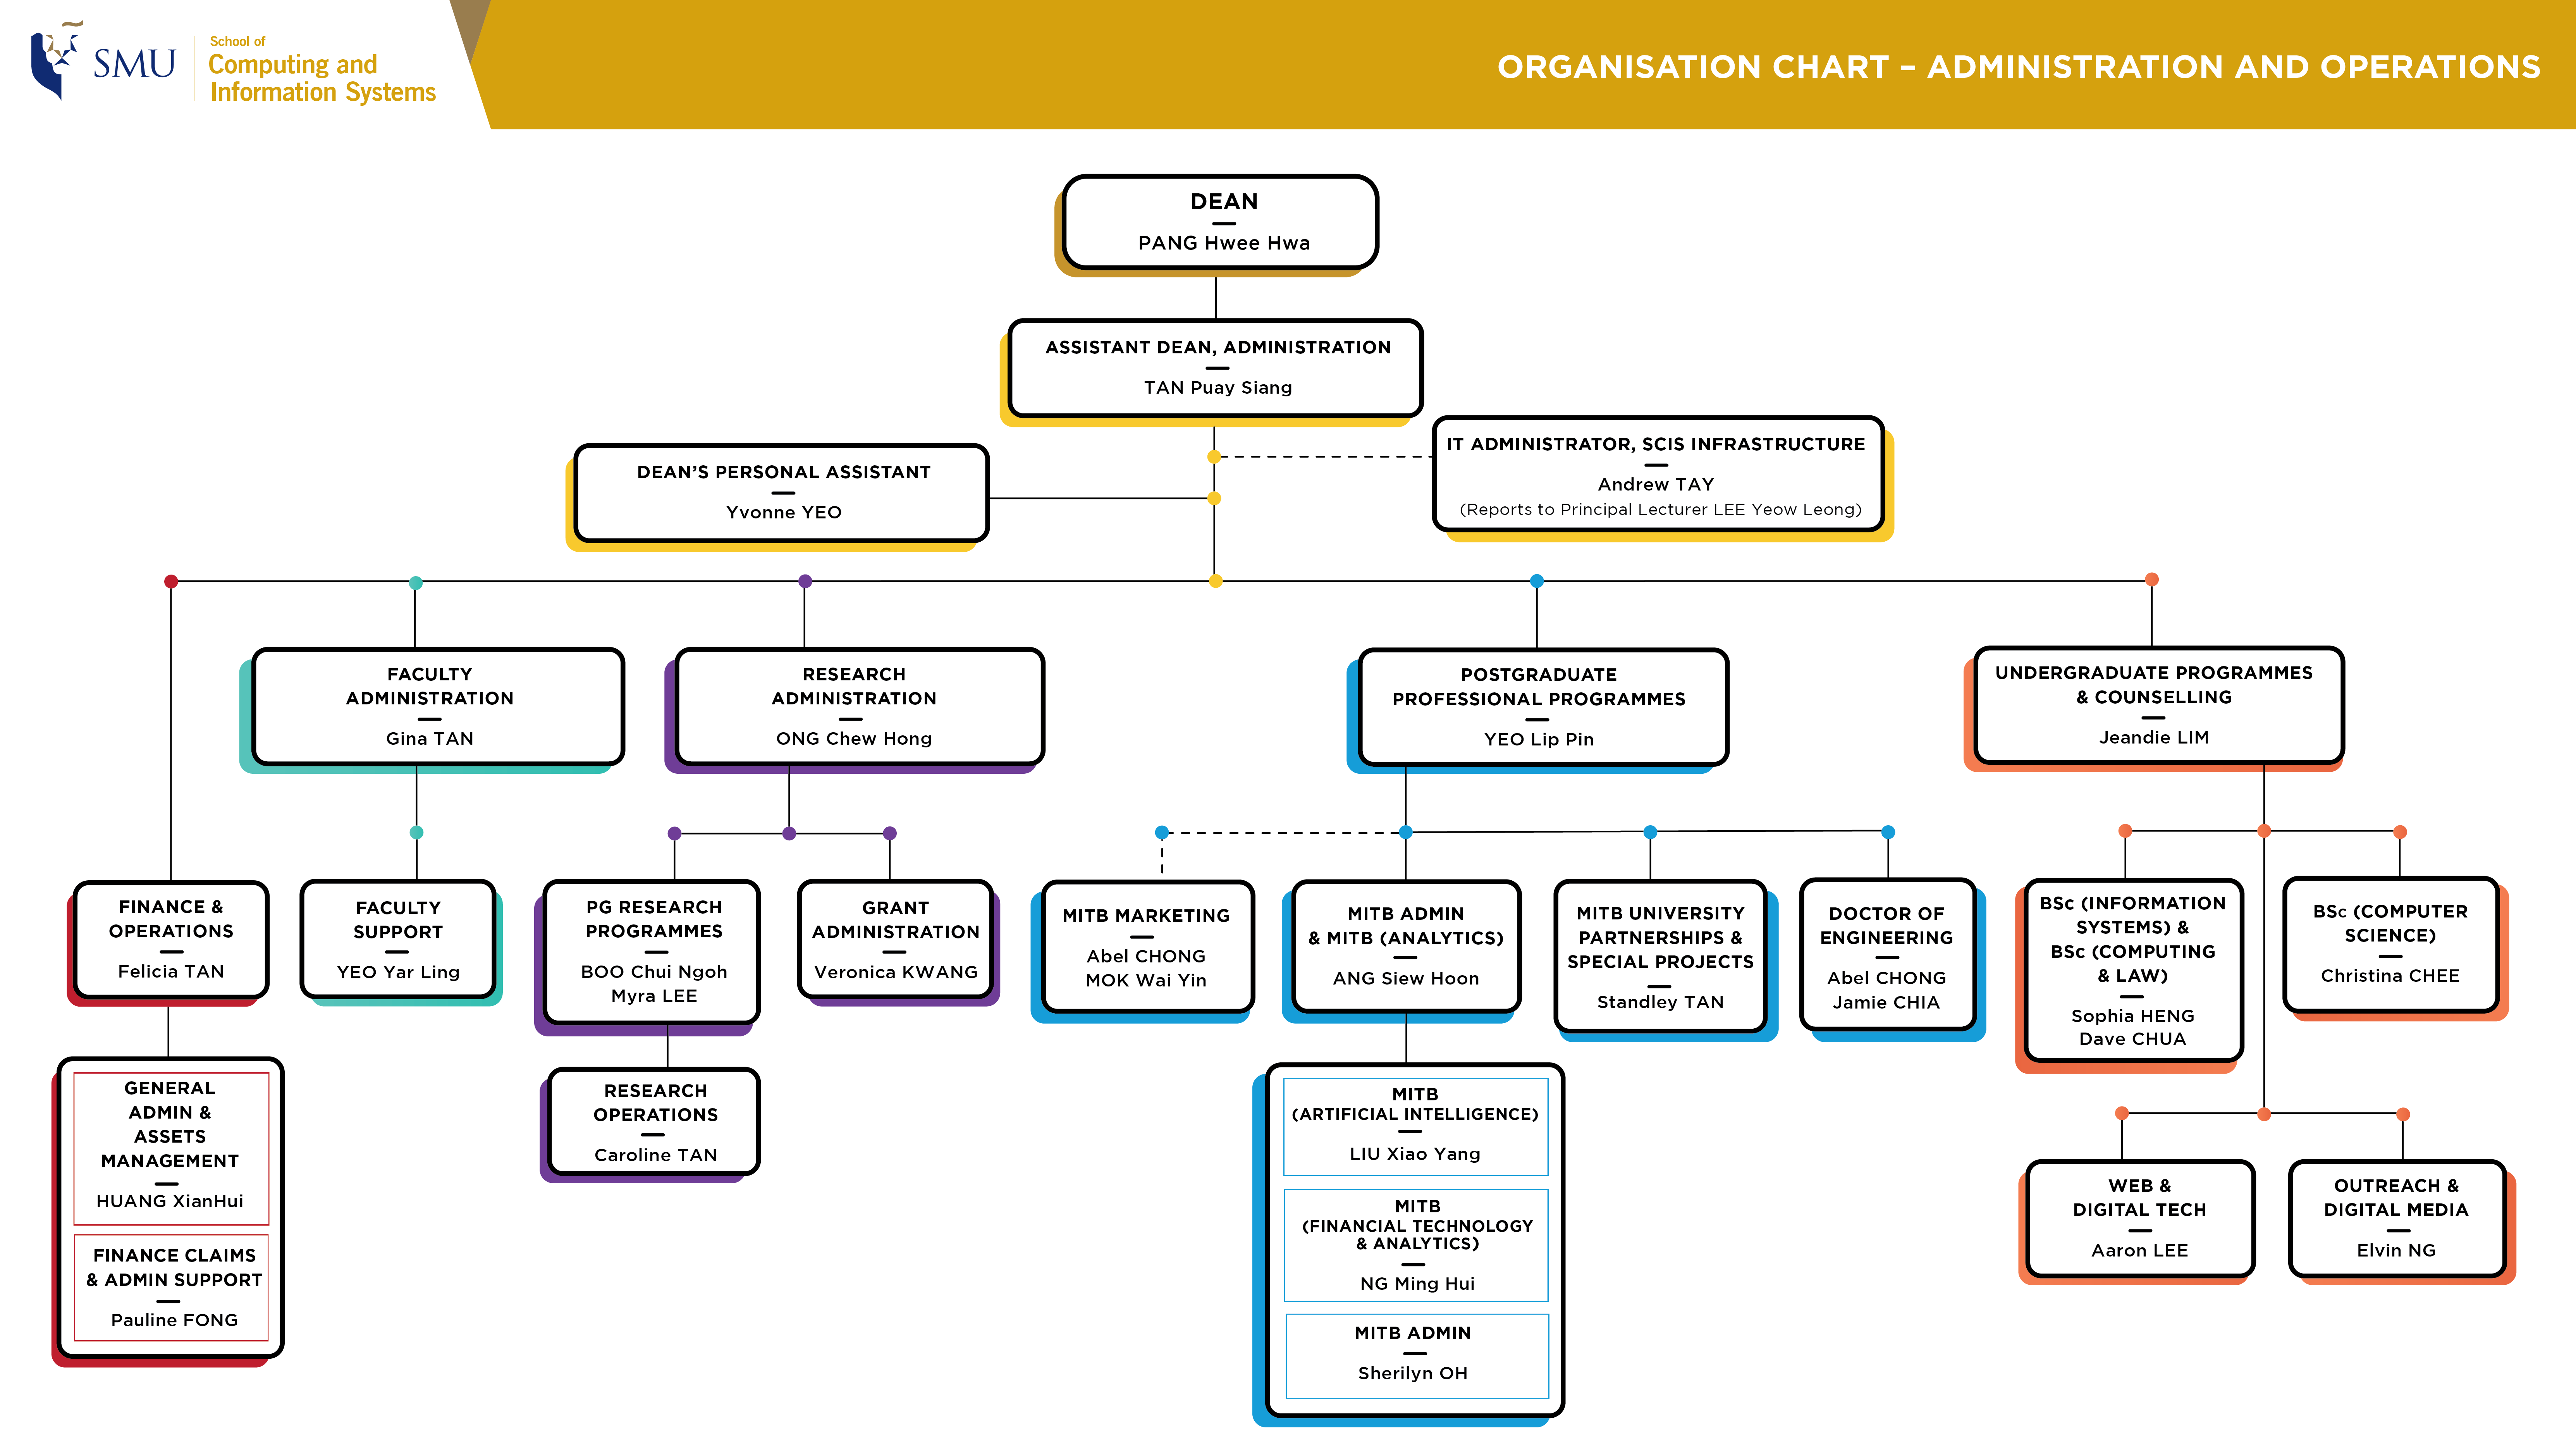 Organisation Chart - Administration & Operations